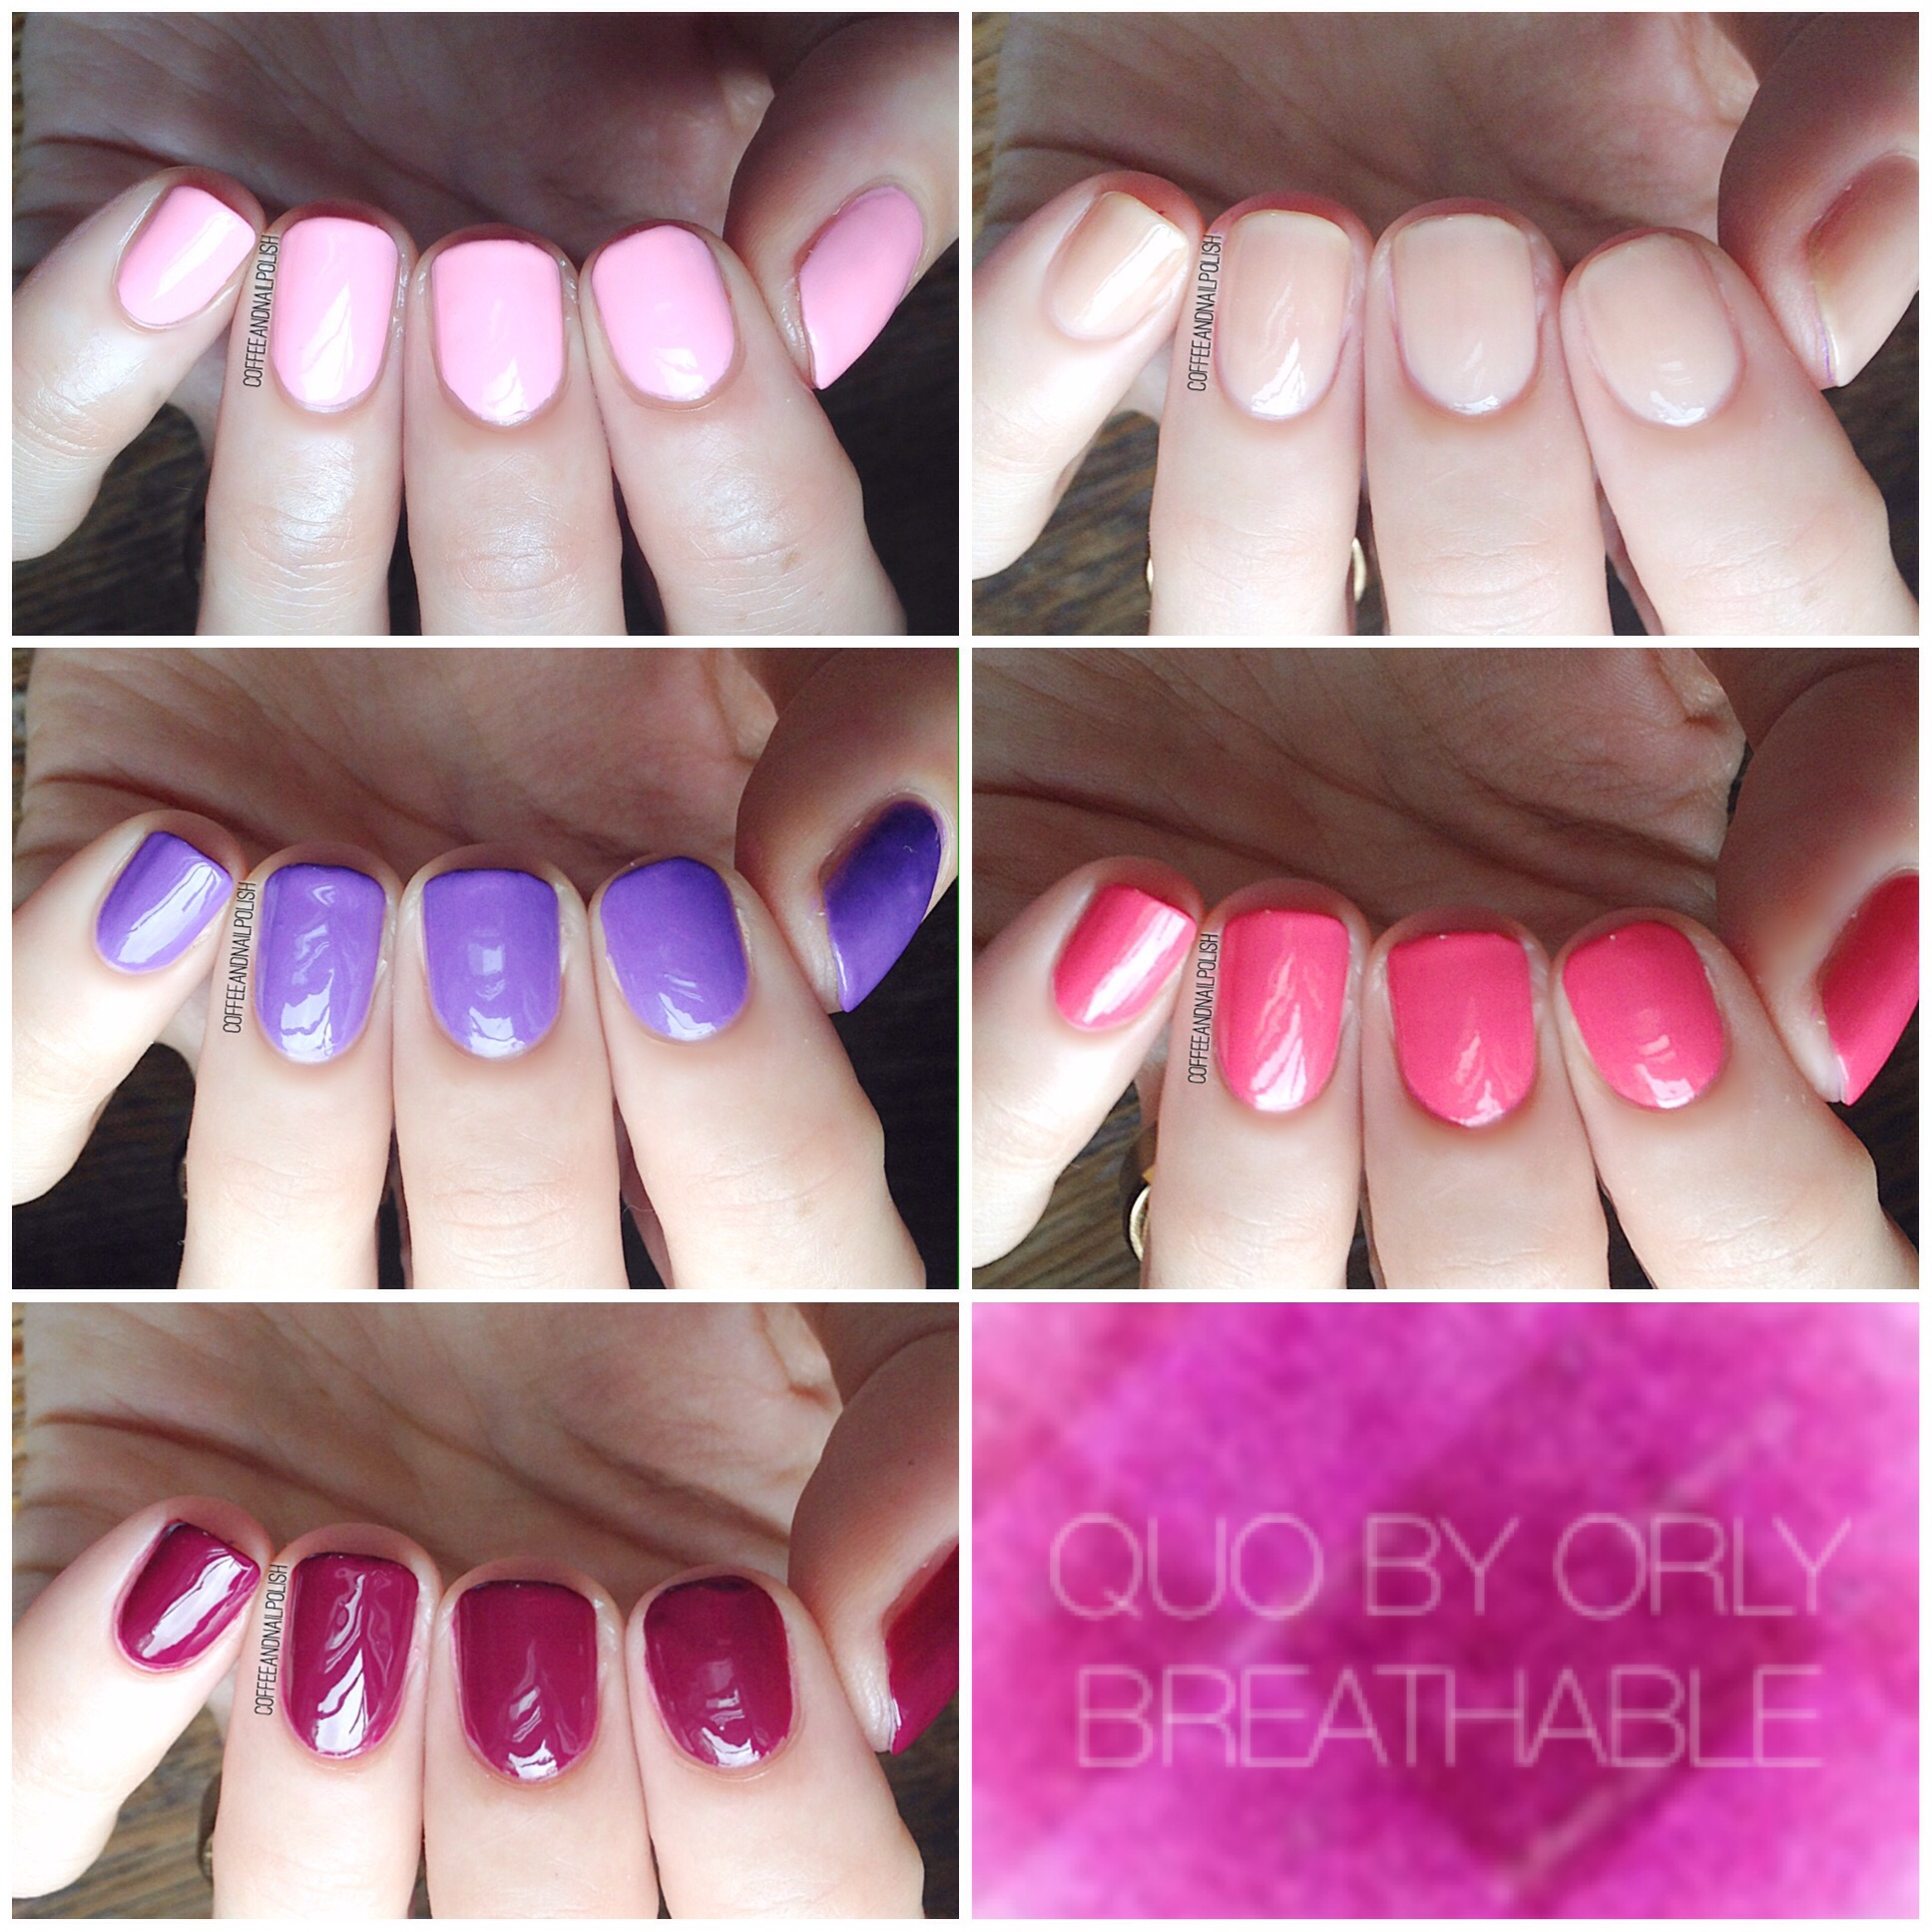 QUO by Orly Breathable swatches. – Coffee & Nail Polish